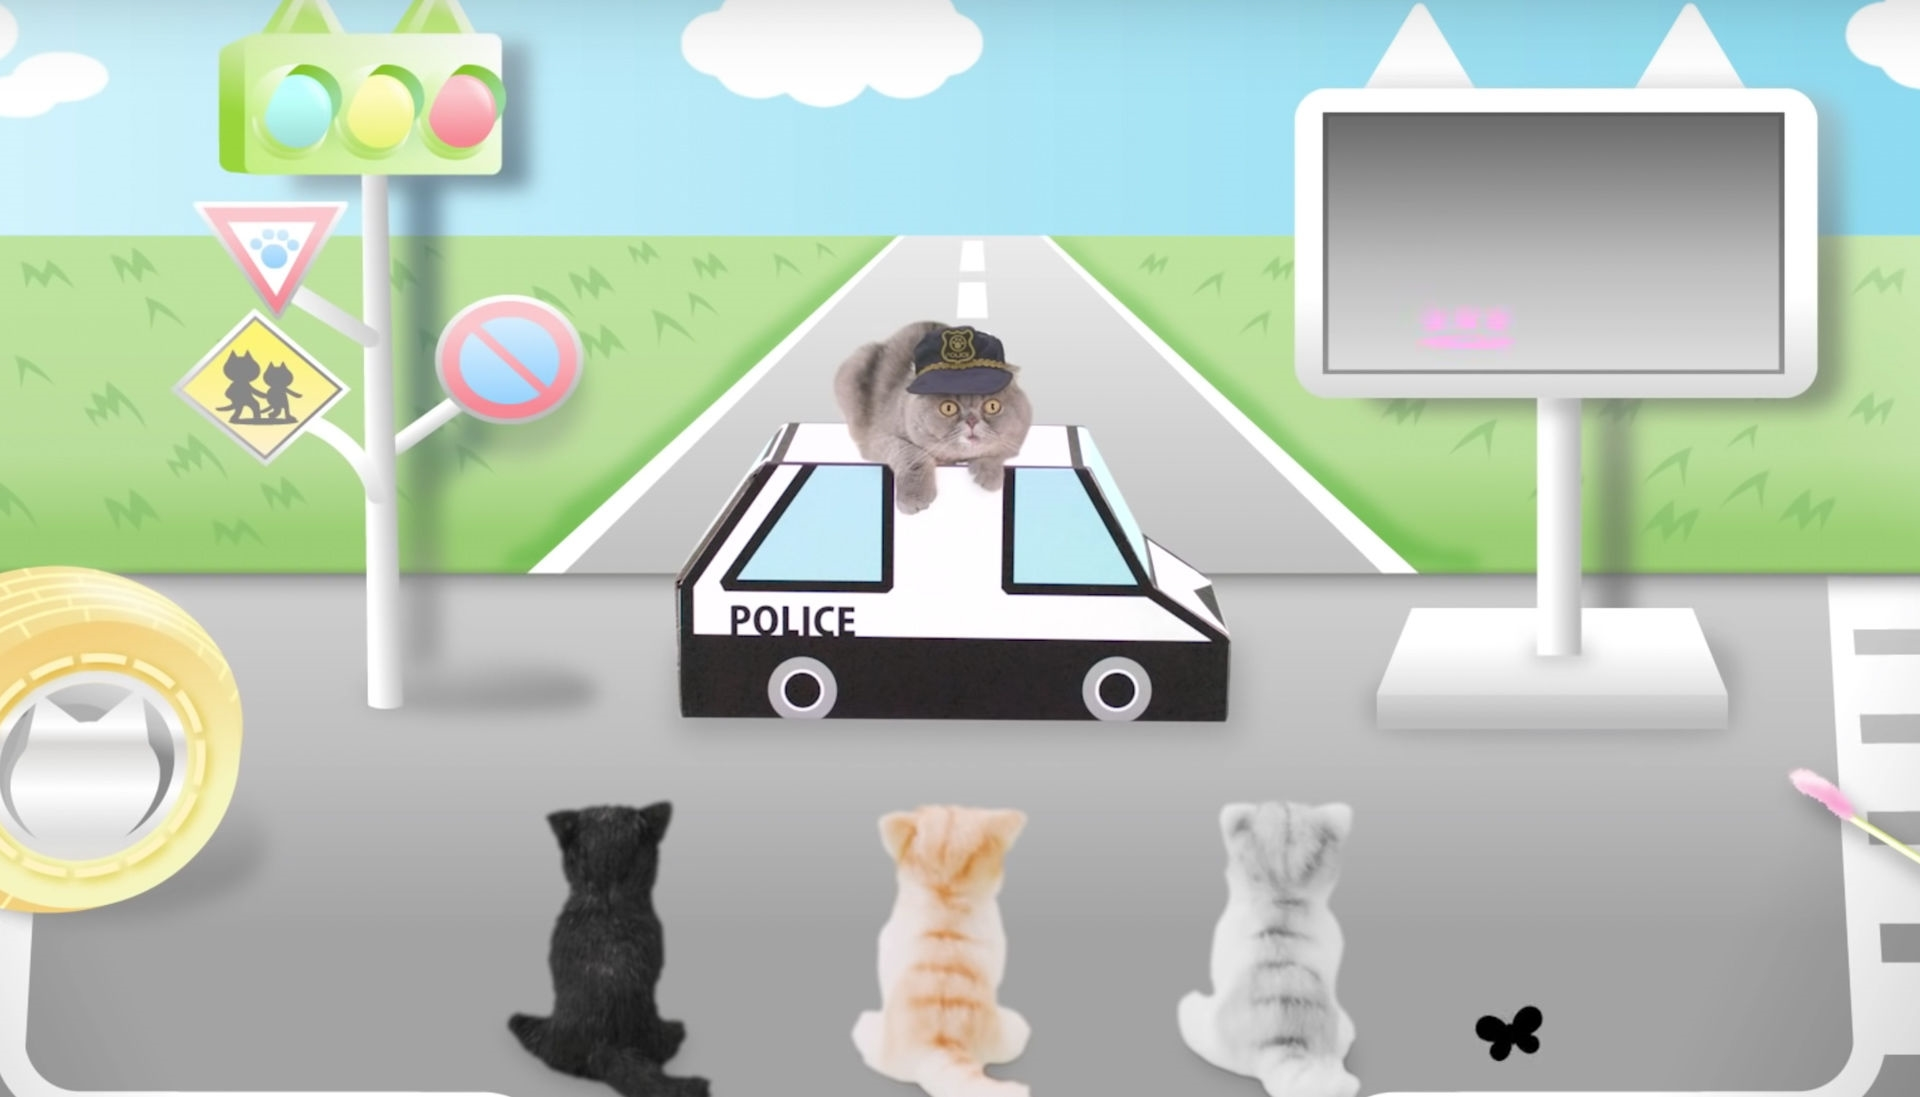 Japanese safety video teaches cats the rules of the road | DeviceDaily.com